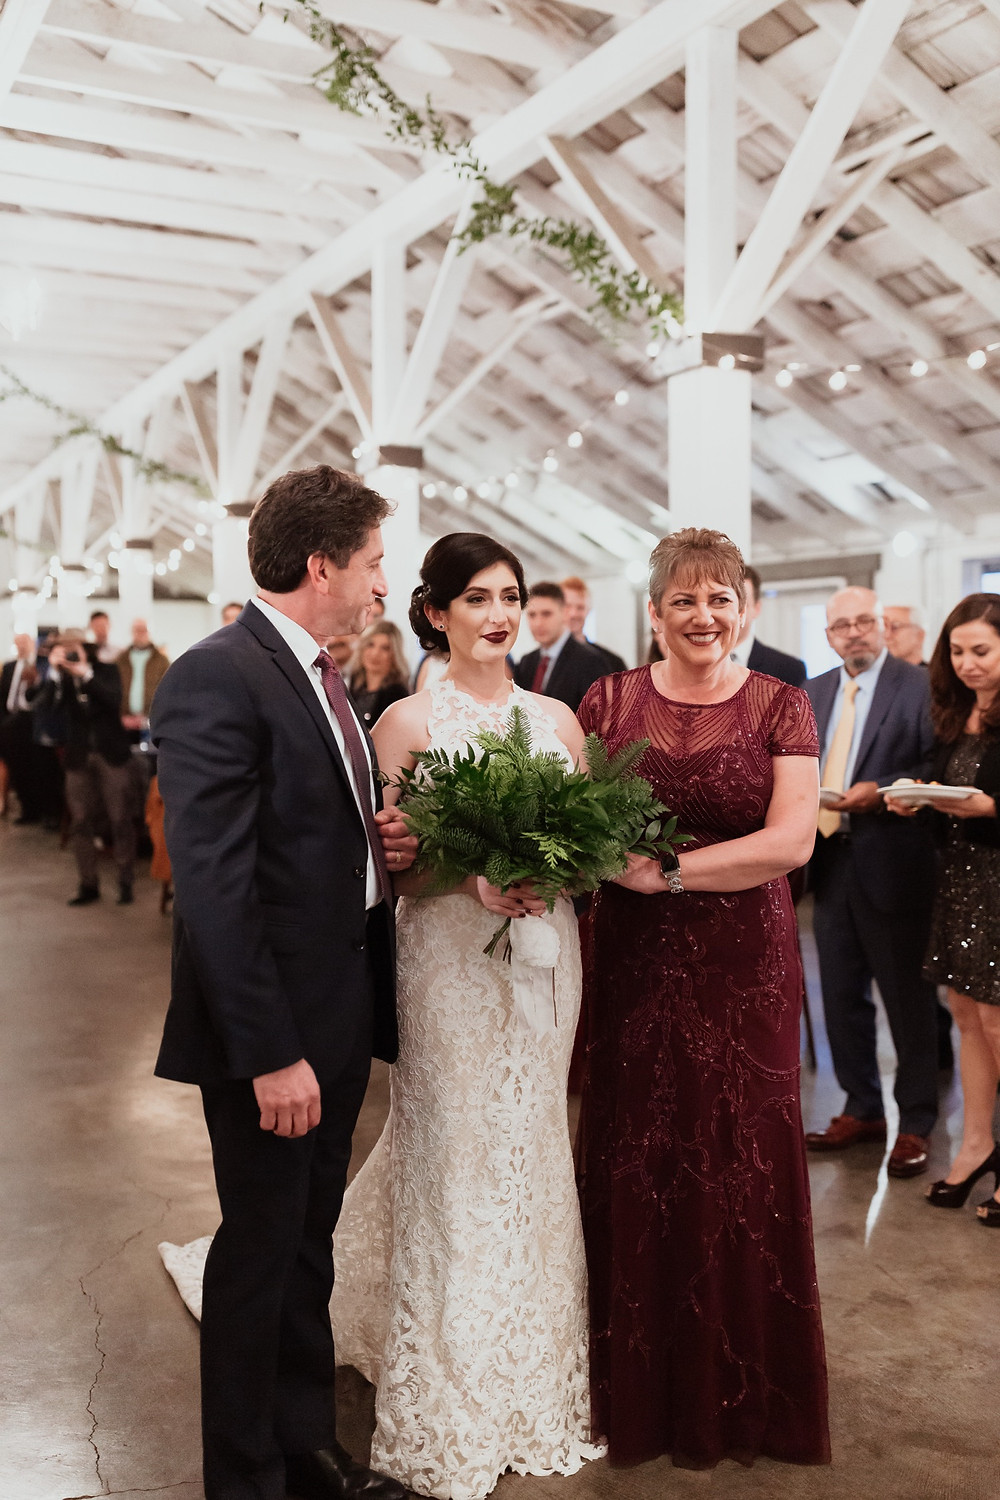 Ceremony photo of a bride walking down the aisle during her winter wedding at Dairyland in Snohomish, a wedding venue near Seattle, WA. | My Snohomish Wedding | Snohomish Wedding Planning